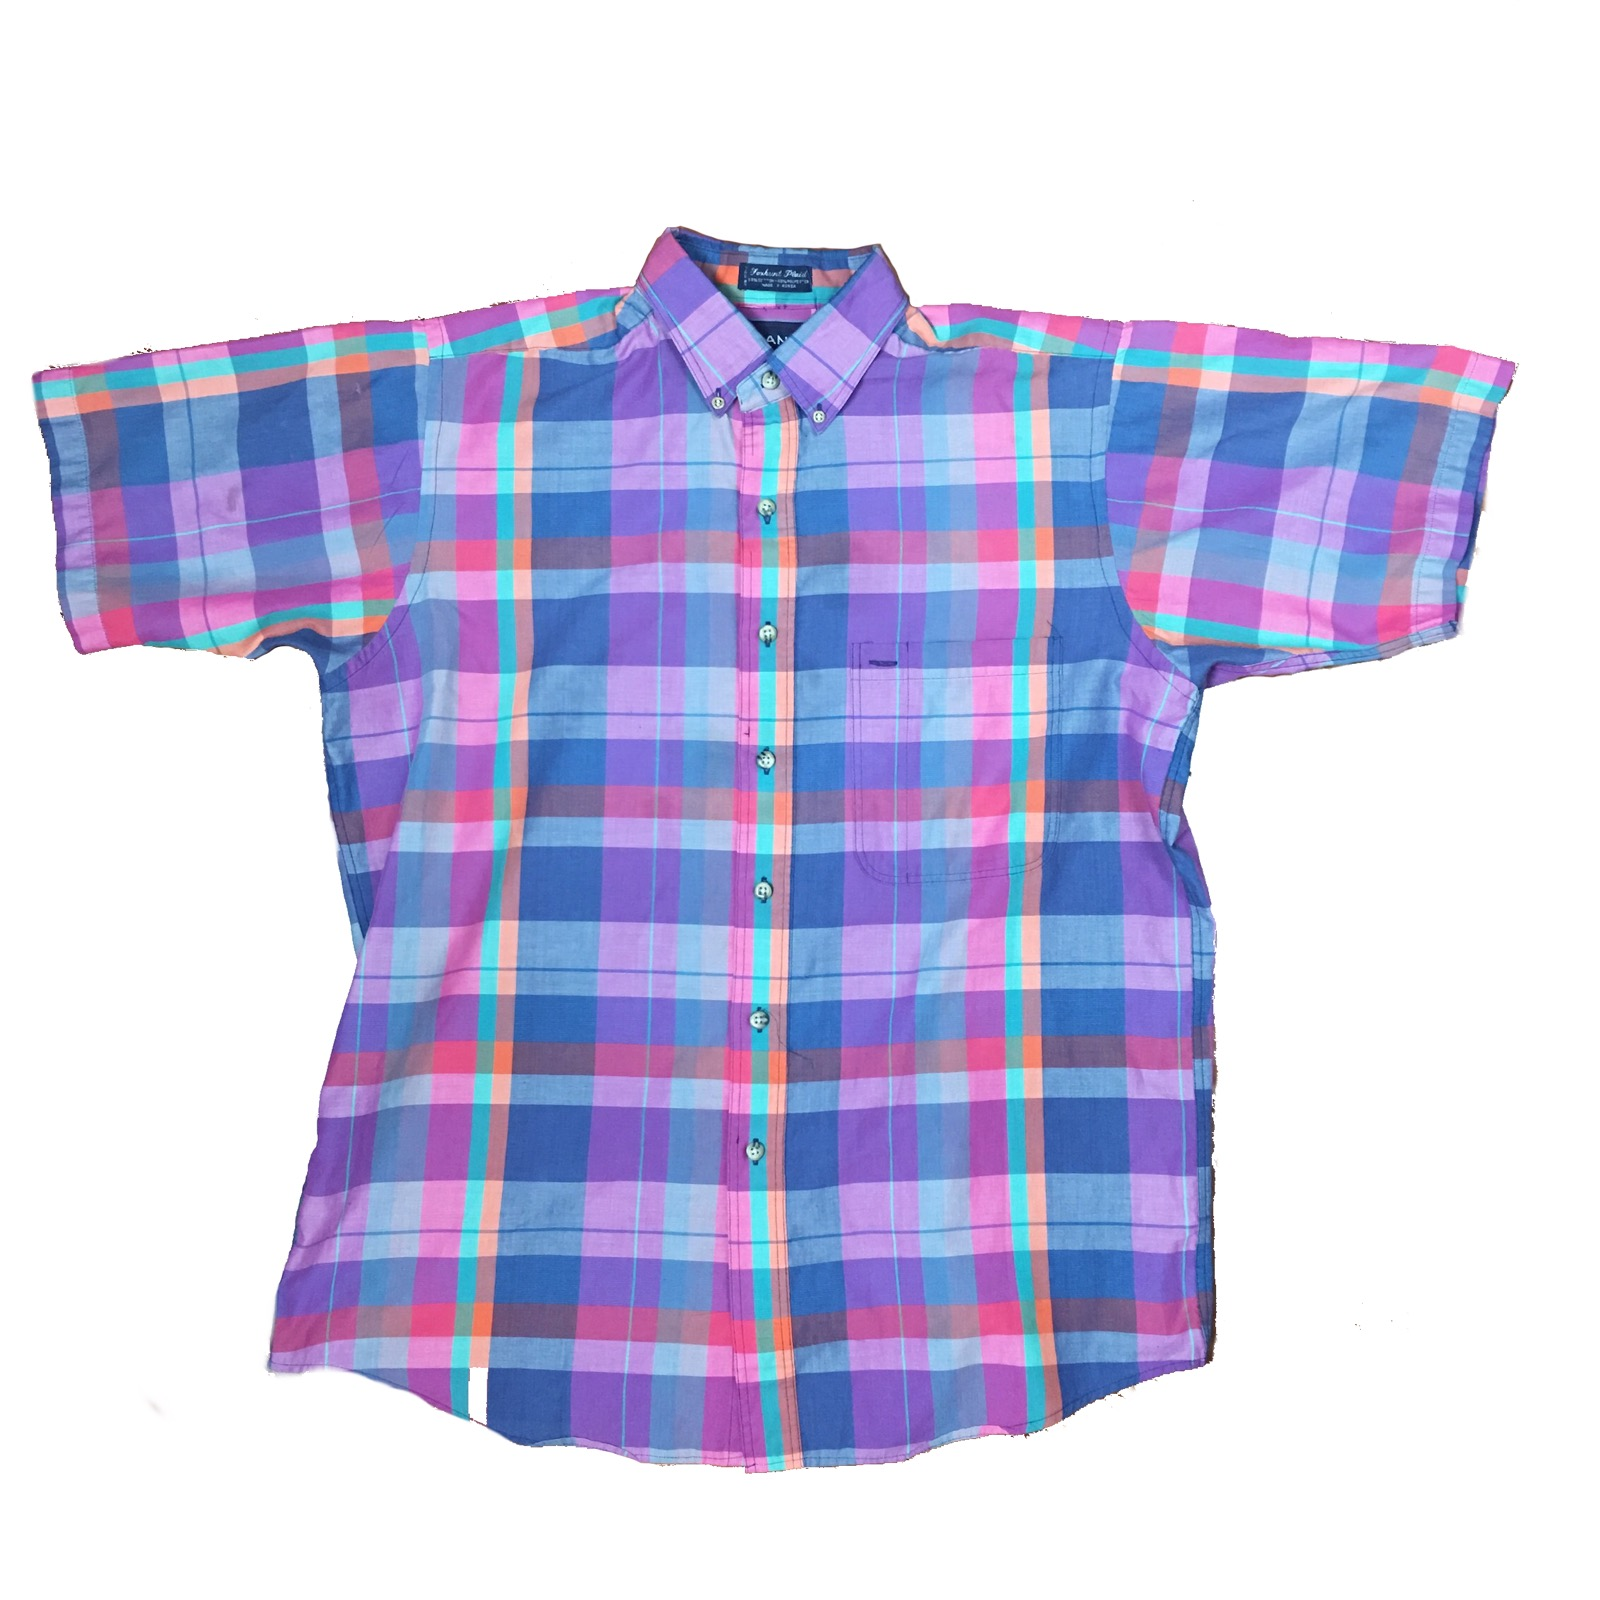 830451d5a Vintage GANT shirt · Happy Hour · Online Store Powered by Storenvy